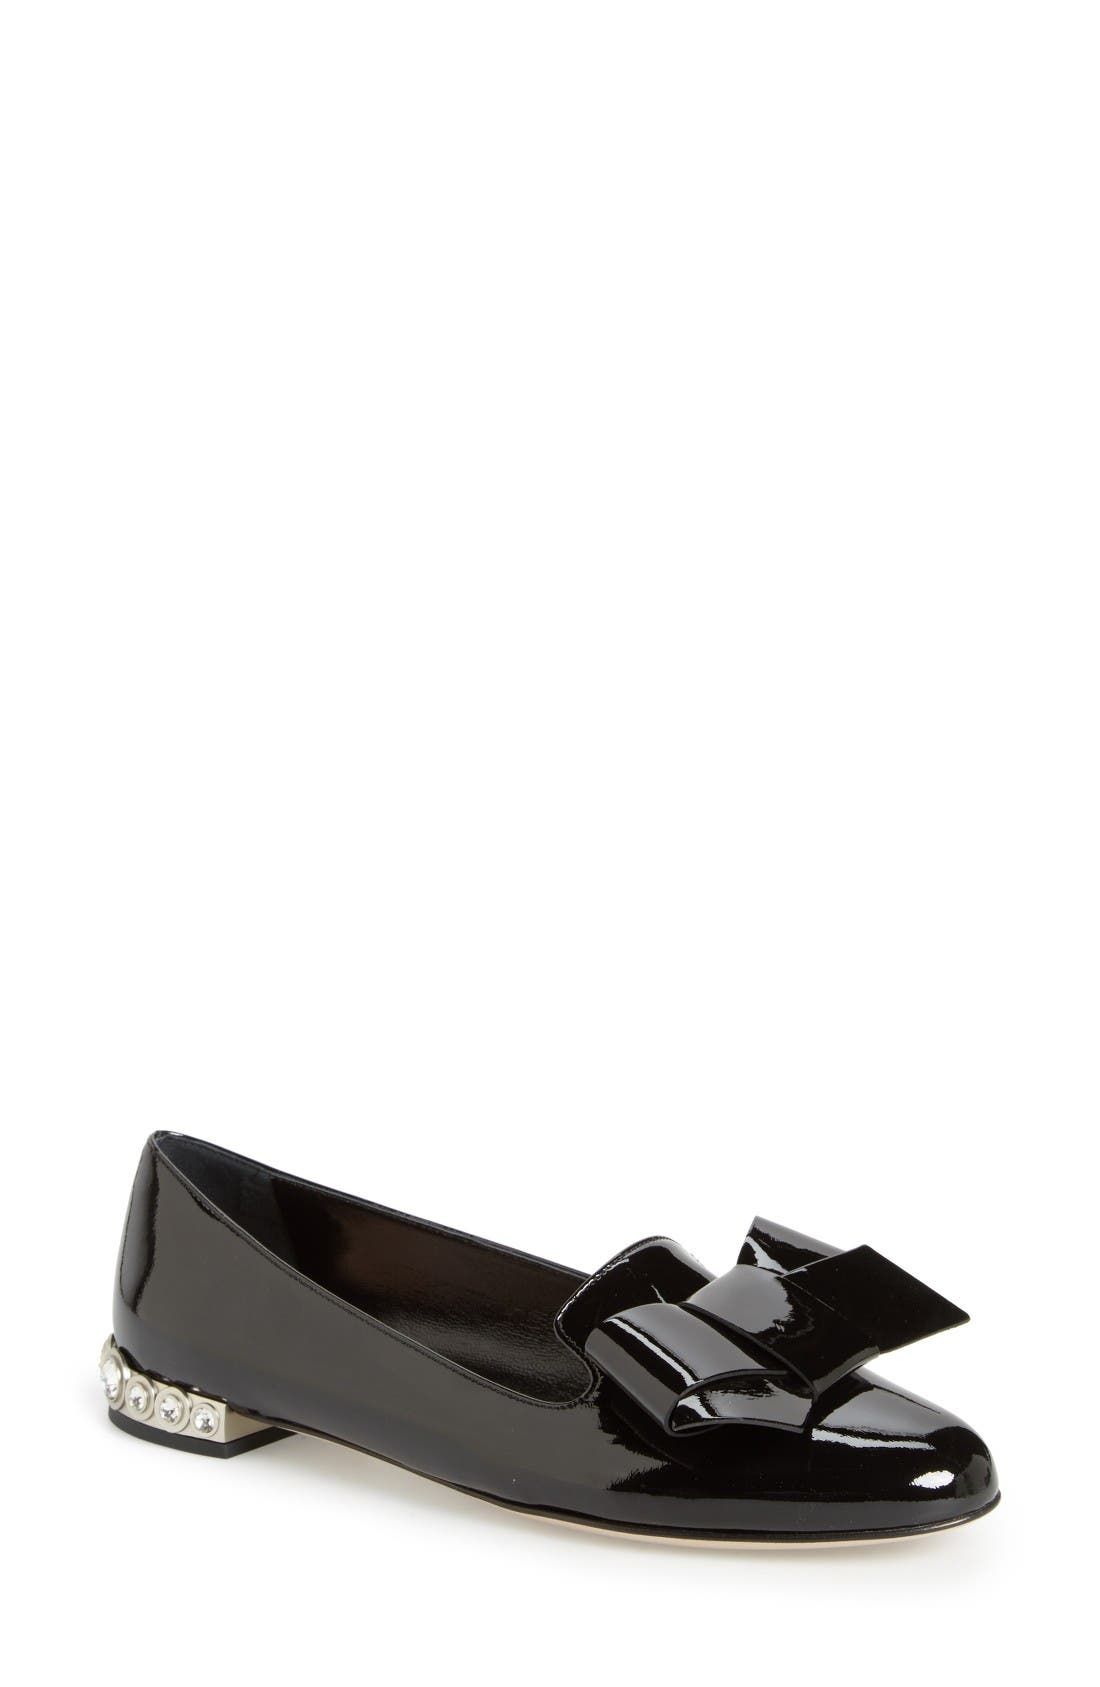 MIU MIU Bow Loafer